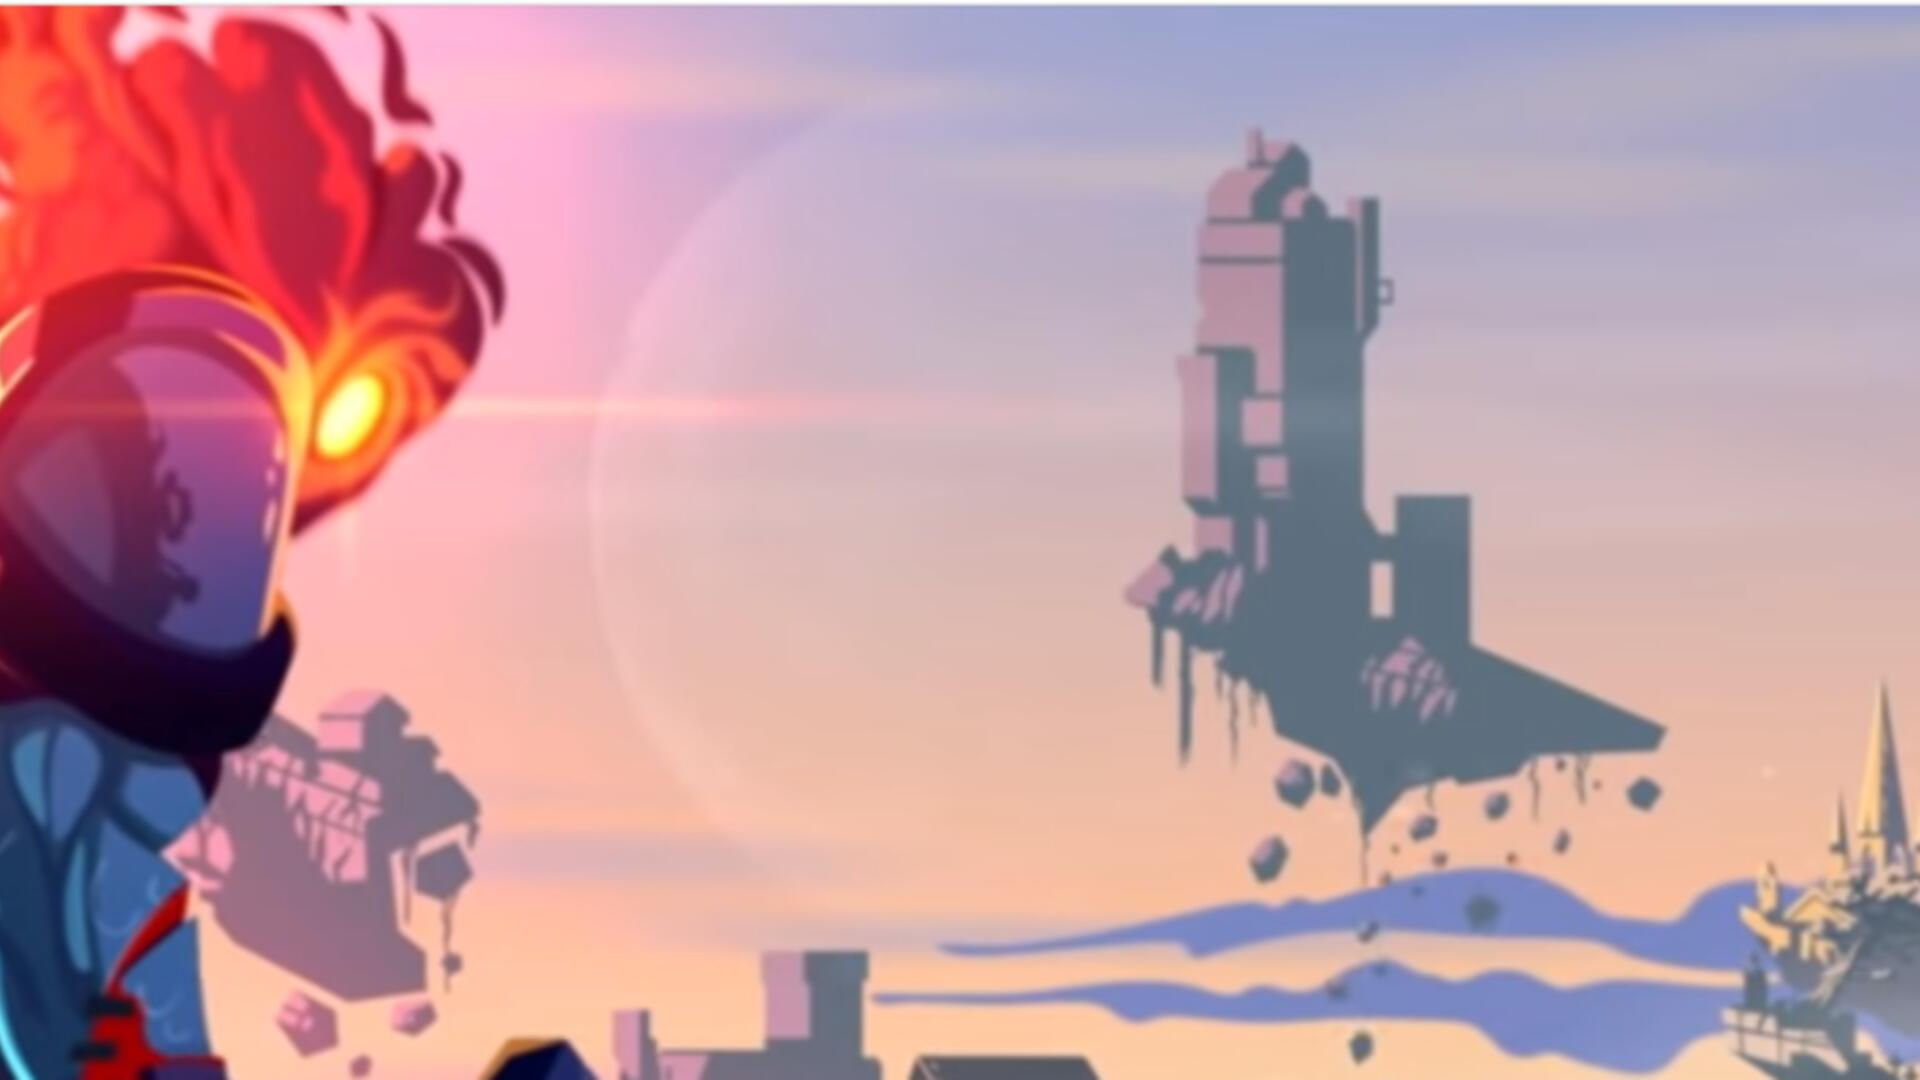 IGN Pulls Dead Cells Review After YouTuber Accuses Outlet of Plagiarism [Update: IGN Fires Writer]